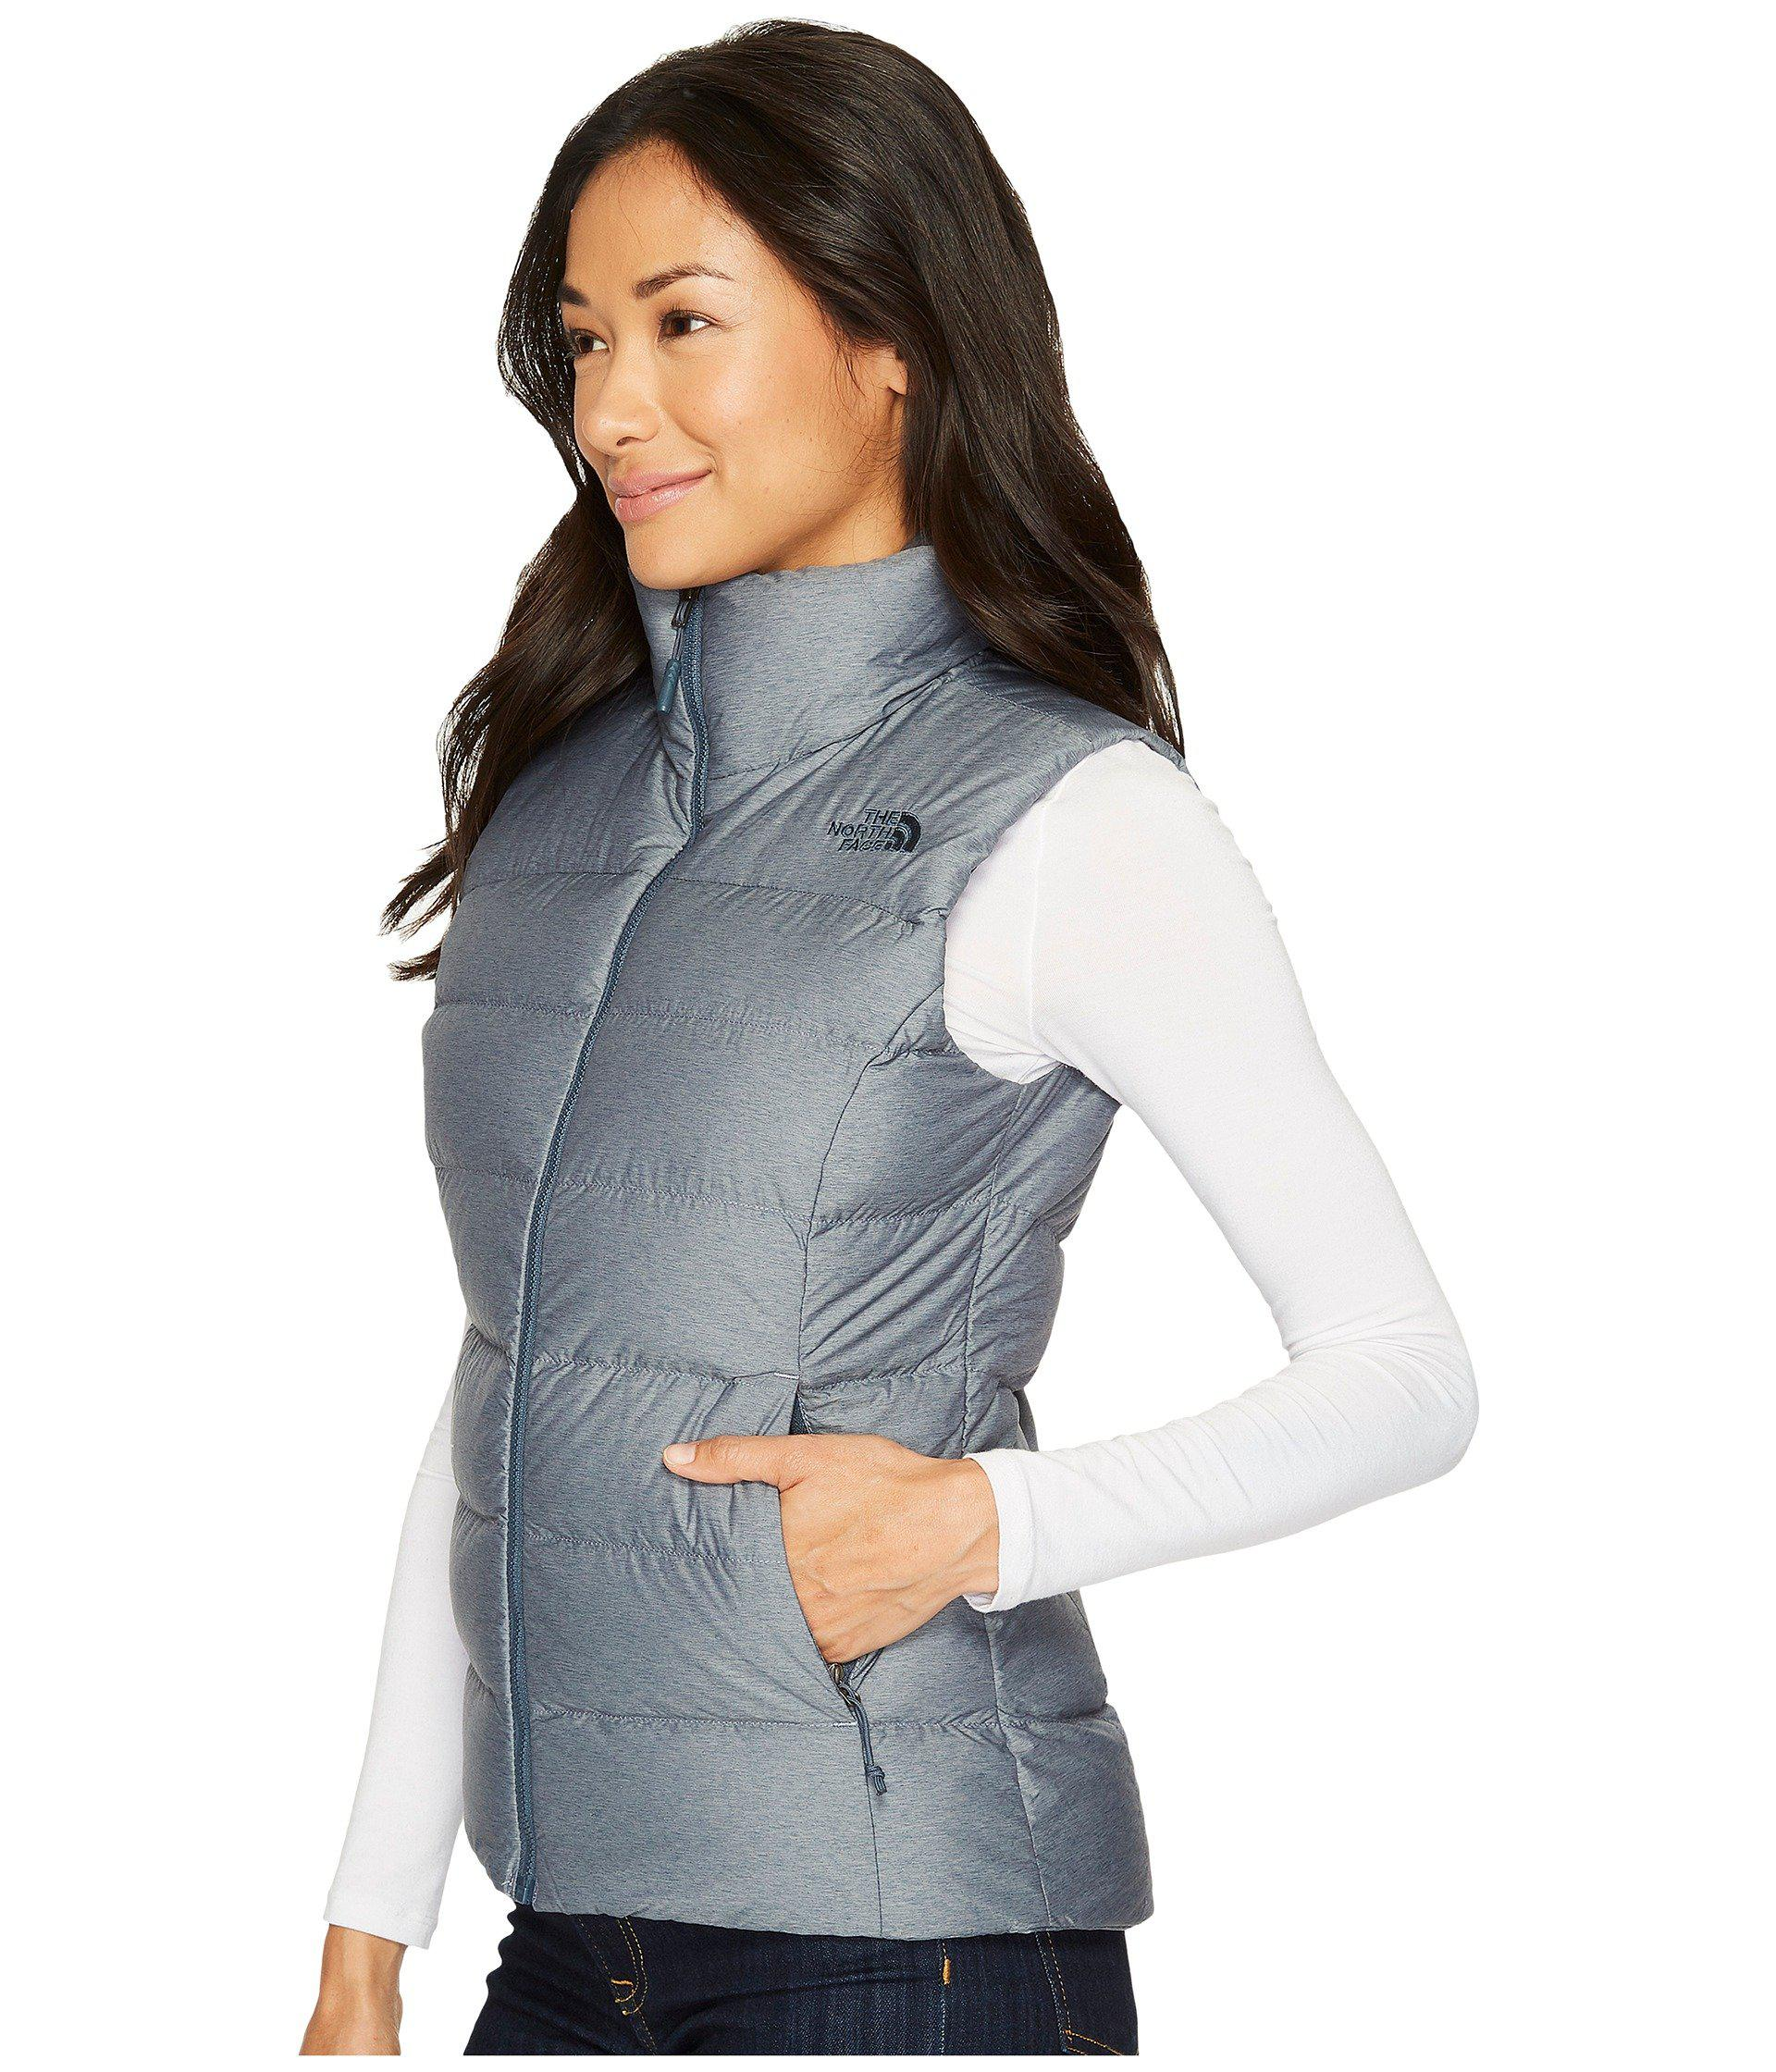 Lyst - The North Face Nuptse Vest (mid Grey tnf Black) Women s Jacket in  Blue - Save 6% 1a1dd5cc2